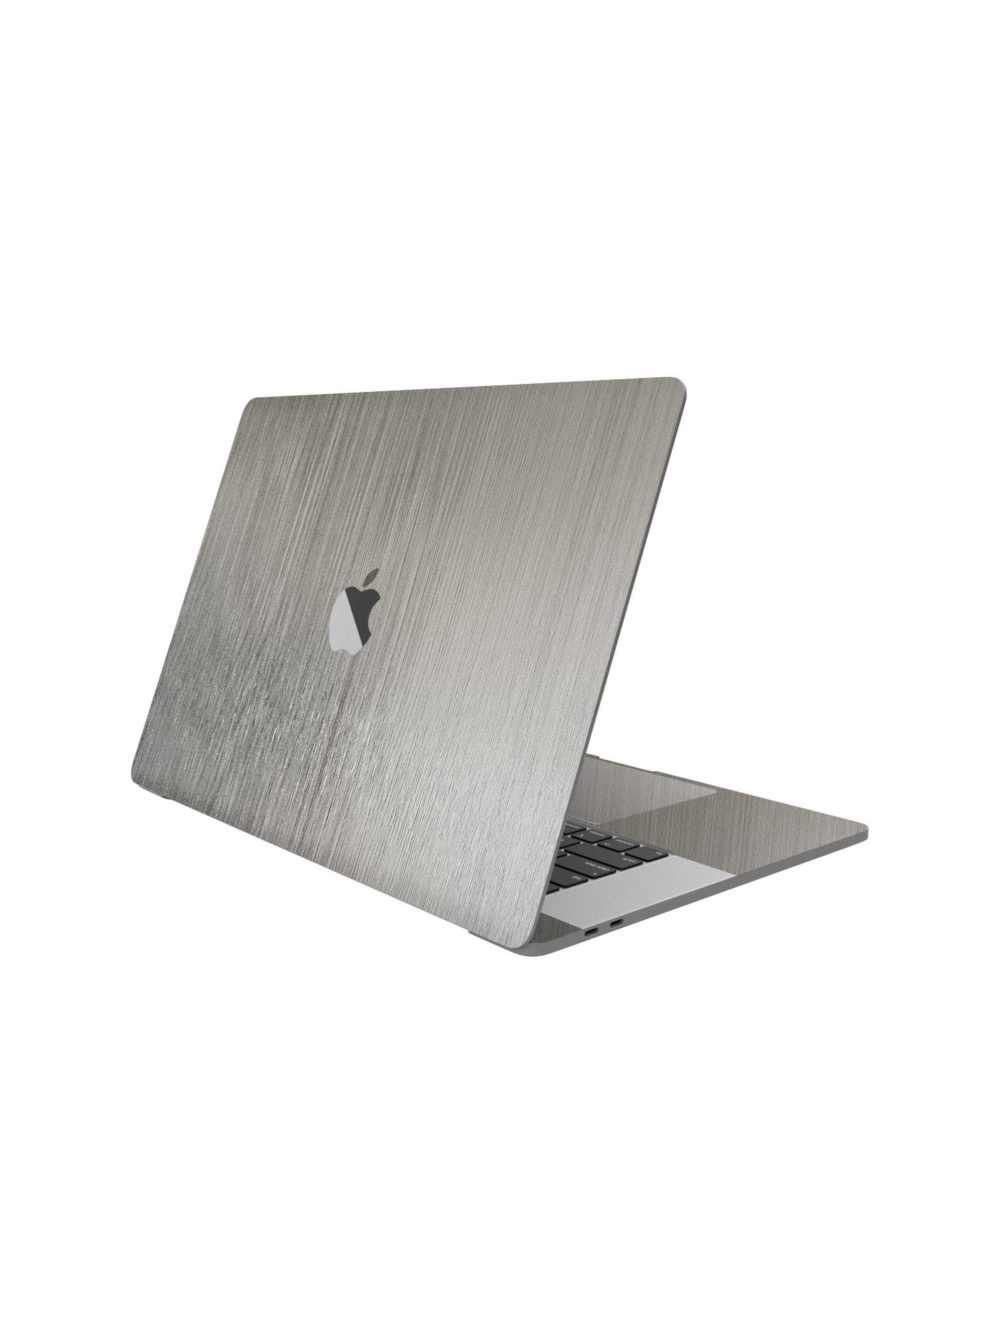 Brushed Silver Skin for Apple Macbook Pro M1 2020